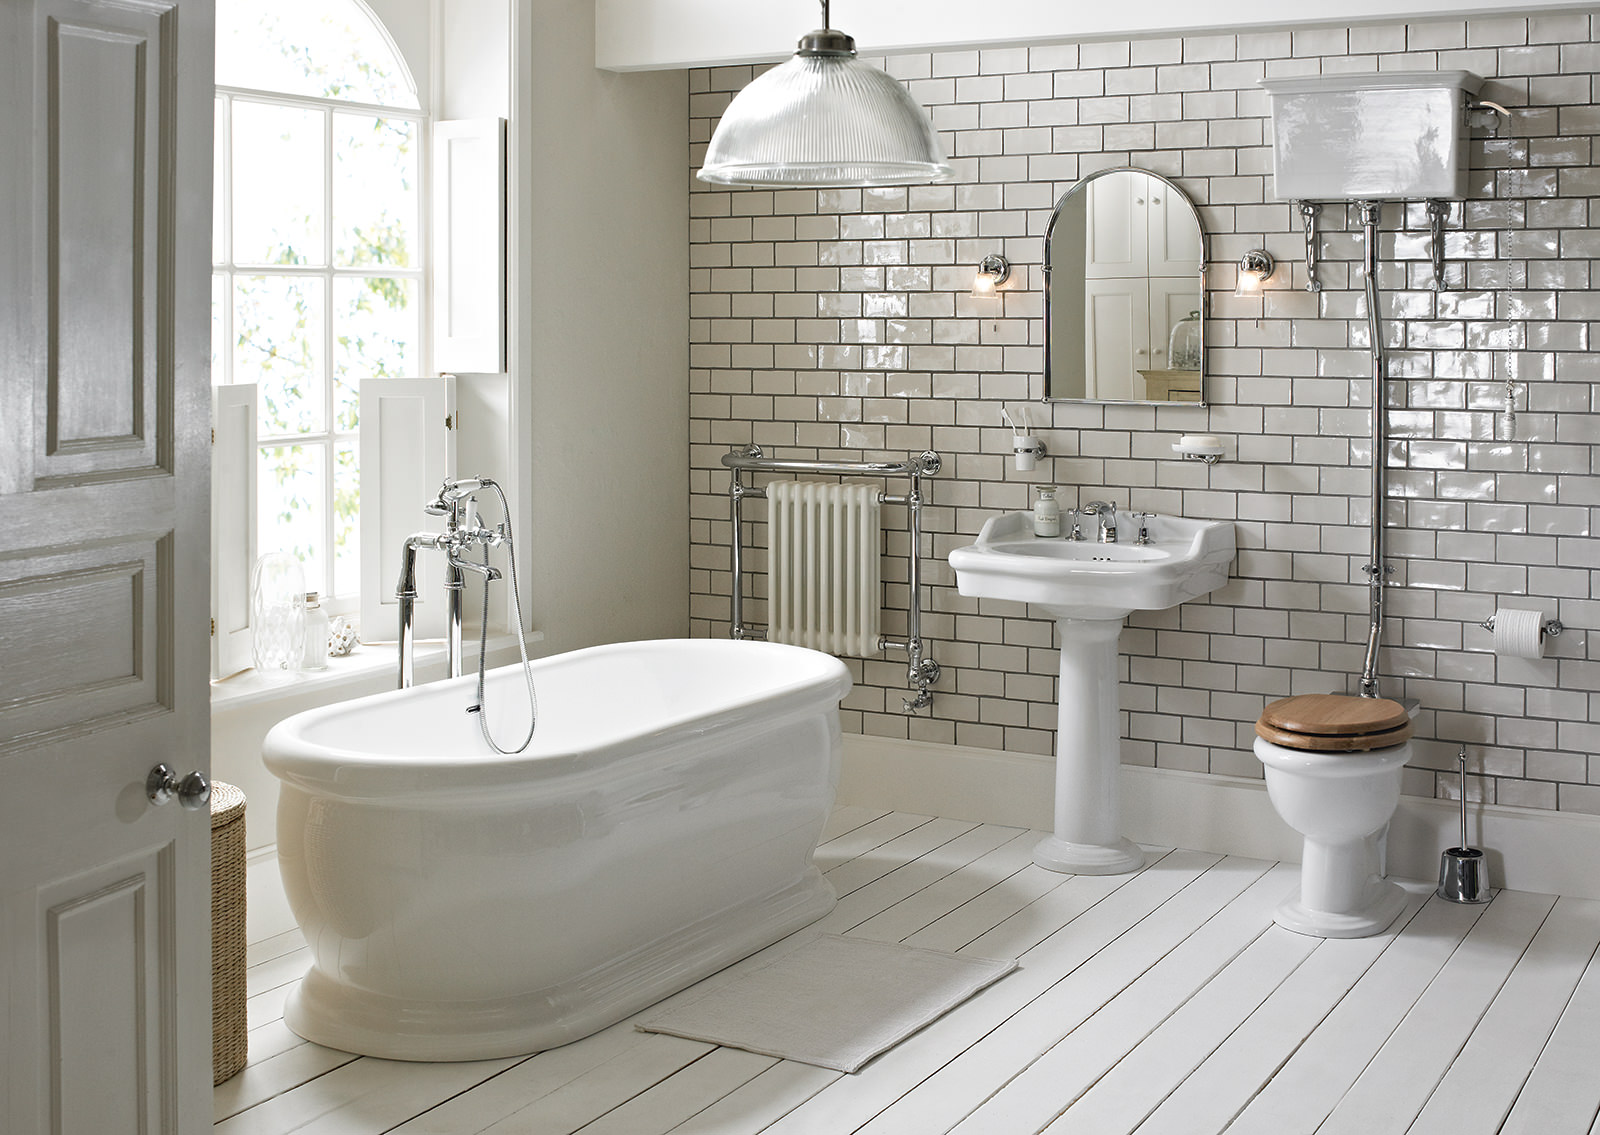 Heritage victoria high level wc and cistern with flush pack for Carrelage metro blanc